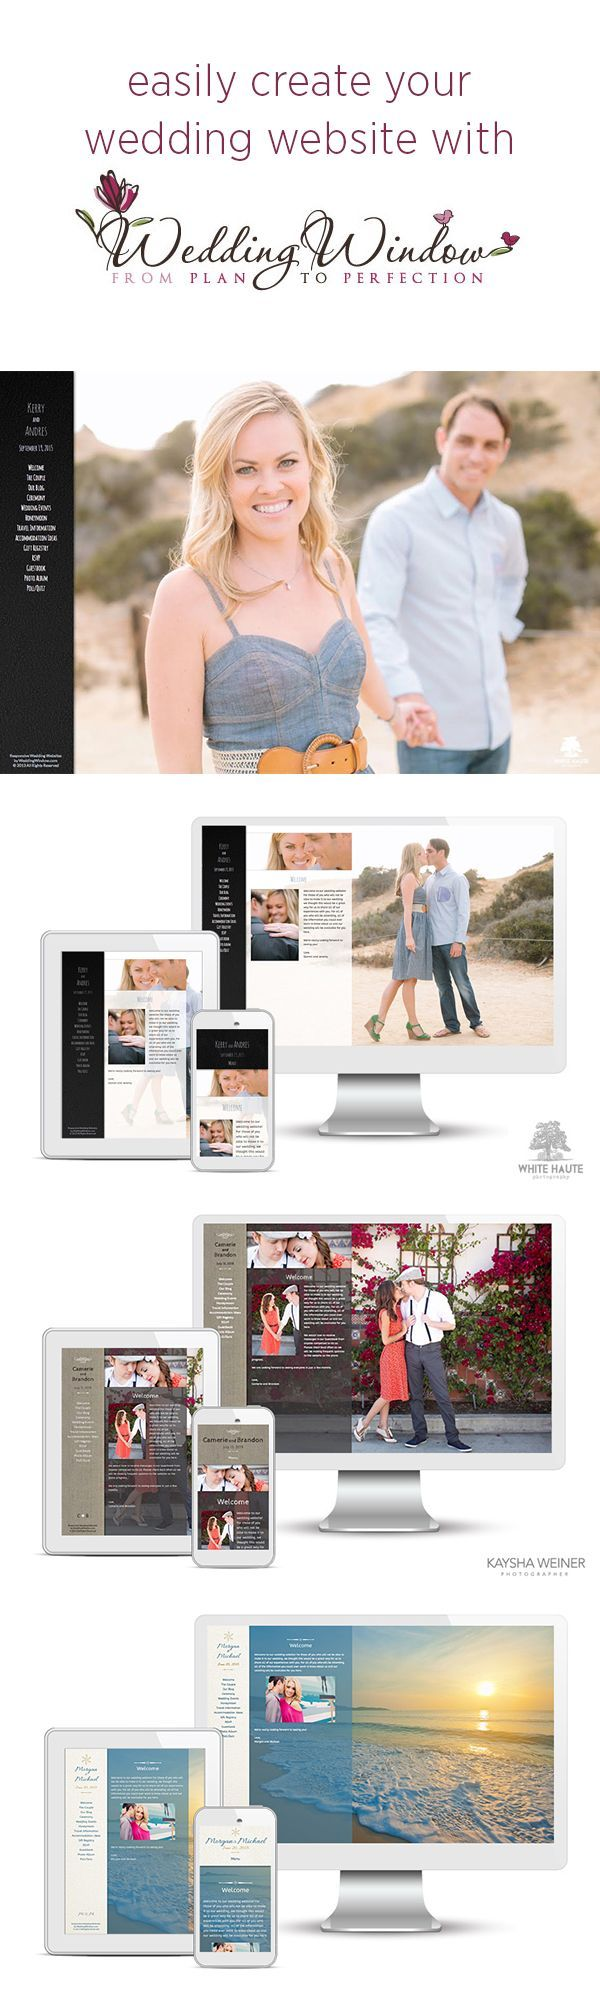 create-wedding-website-wedding-window